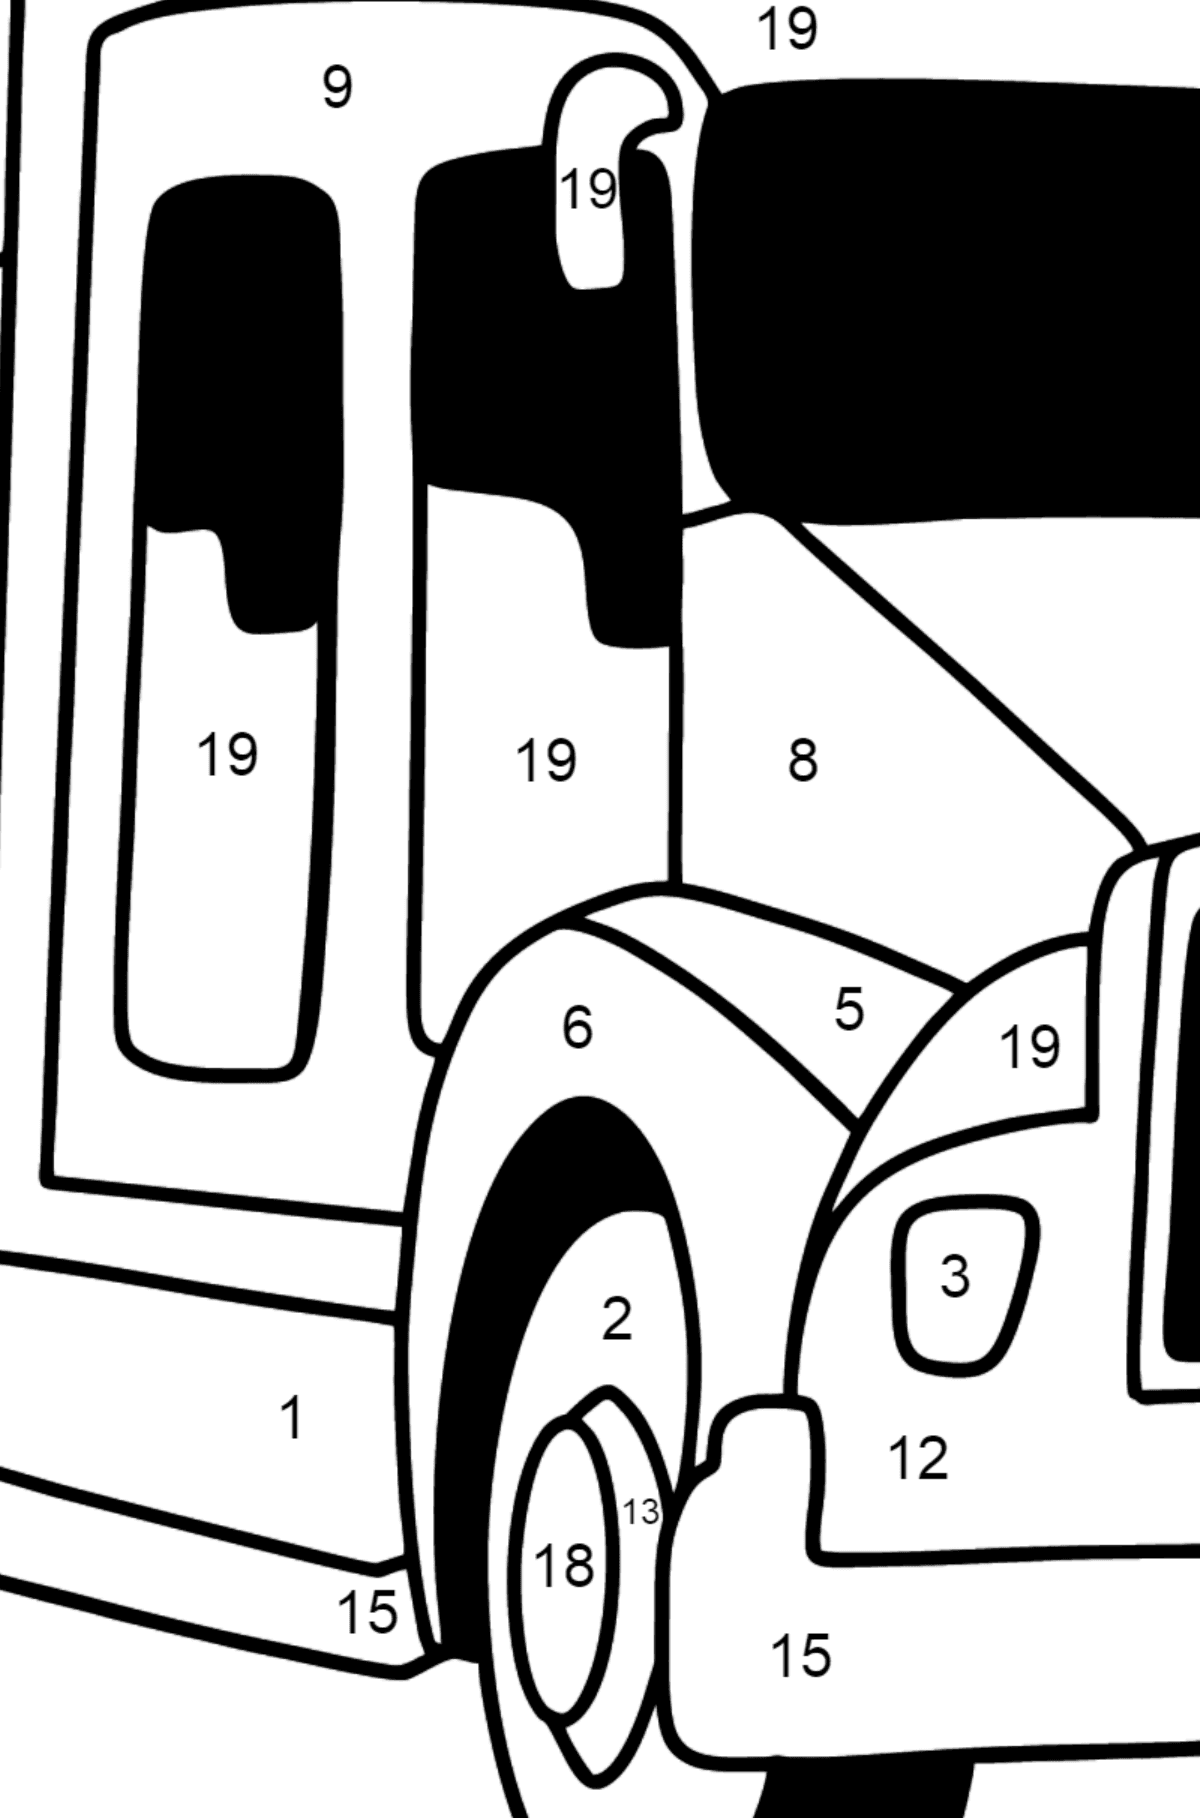 USA Fire Truck coloring page - Coloring by Numbers for Kids